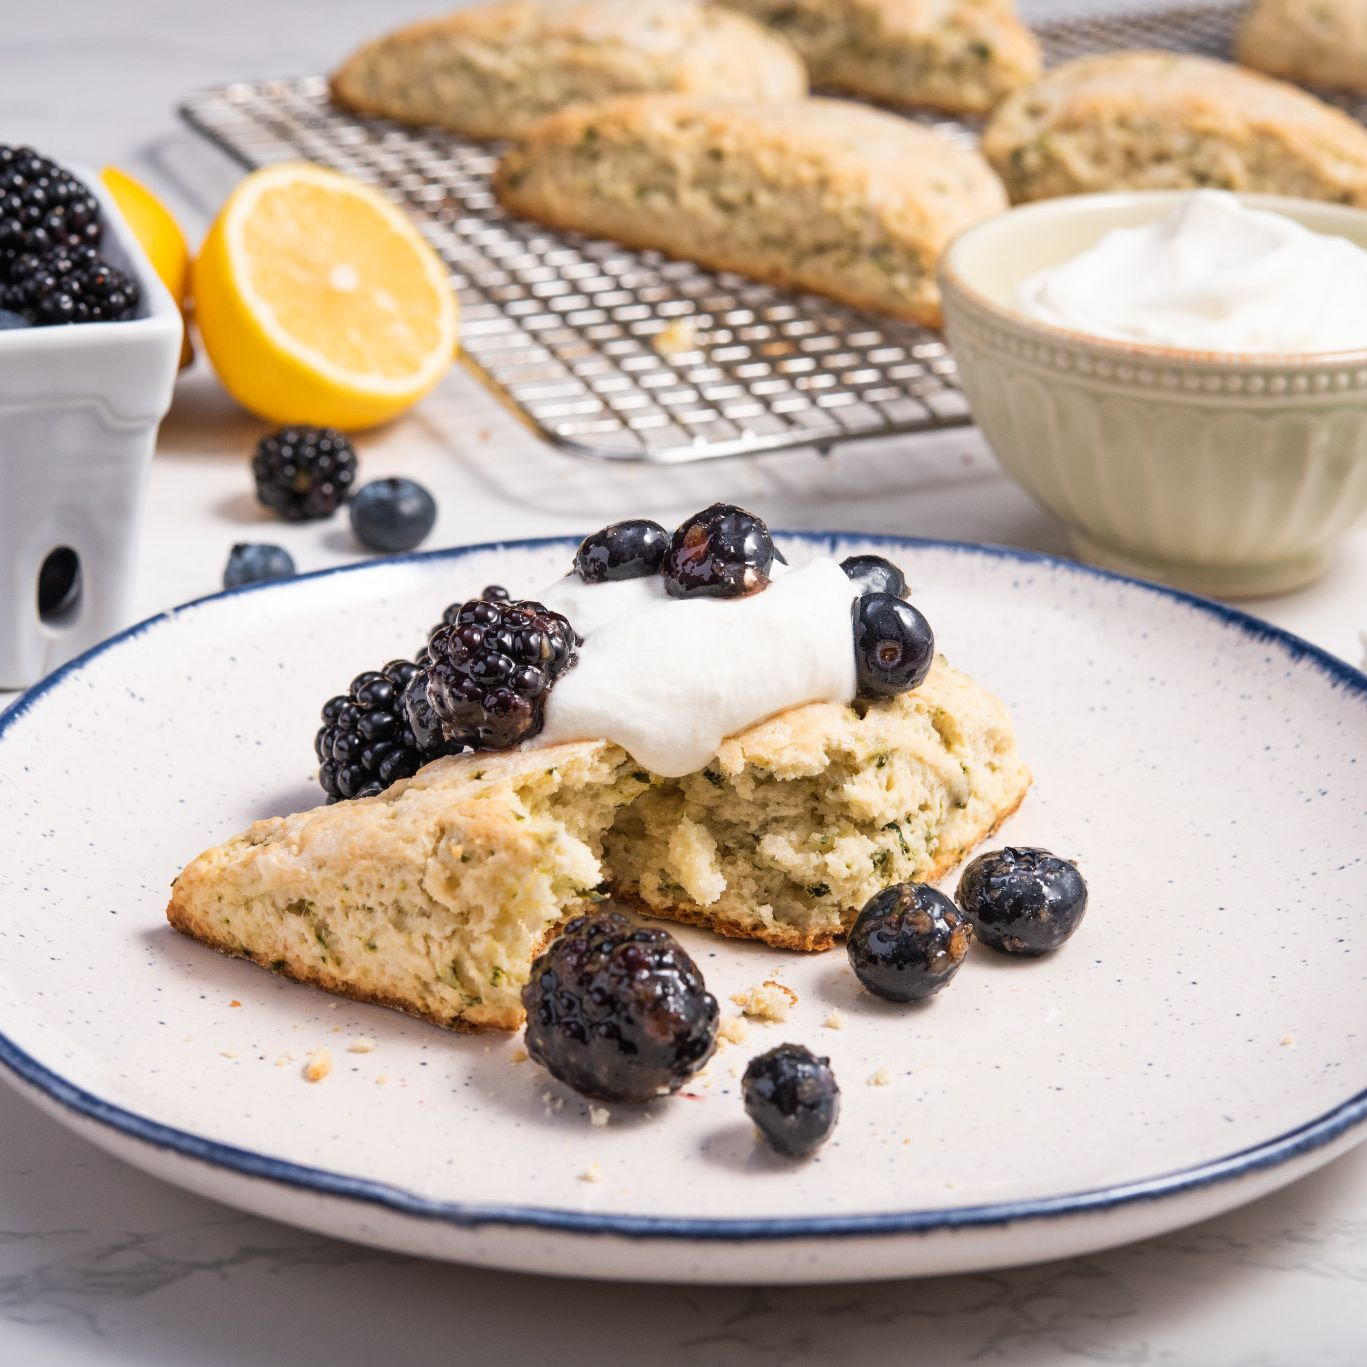 Basil Scones with Gingered Berries and Whipped Cream